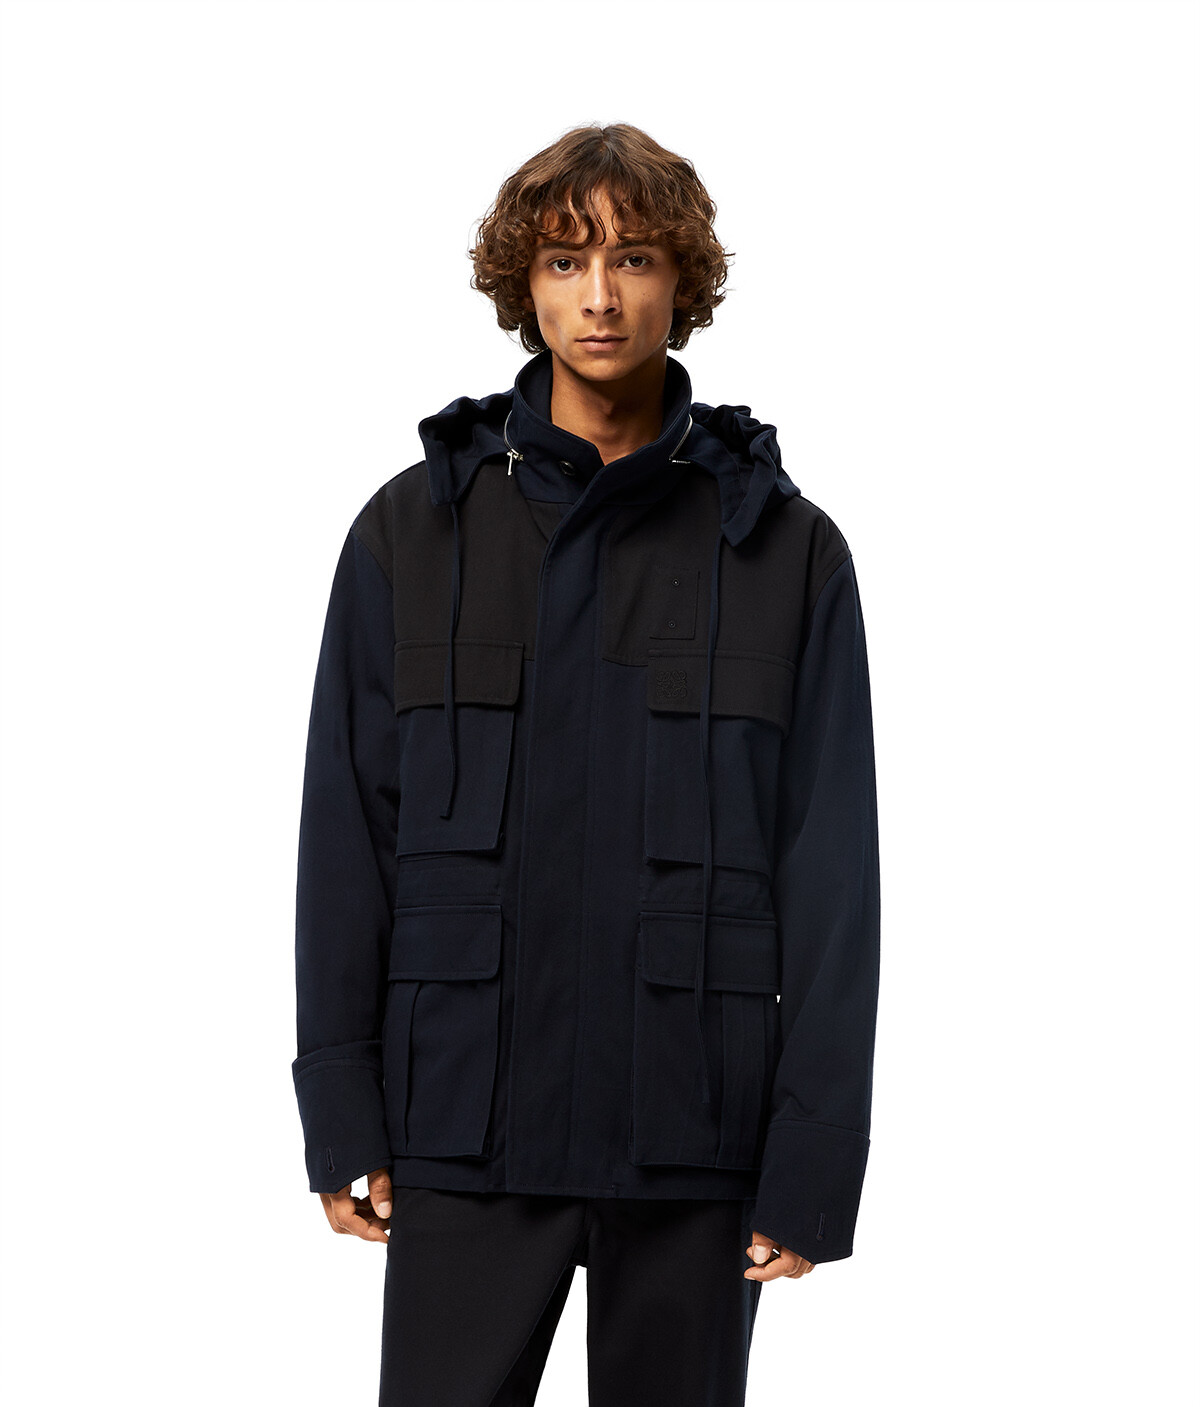 LOEWE Patch Pocket Hooded Parka 海軍藍 front